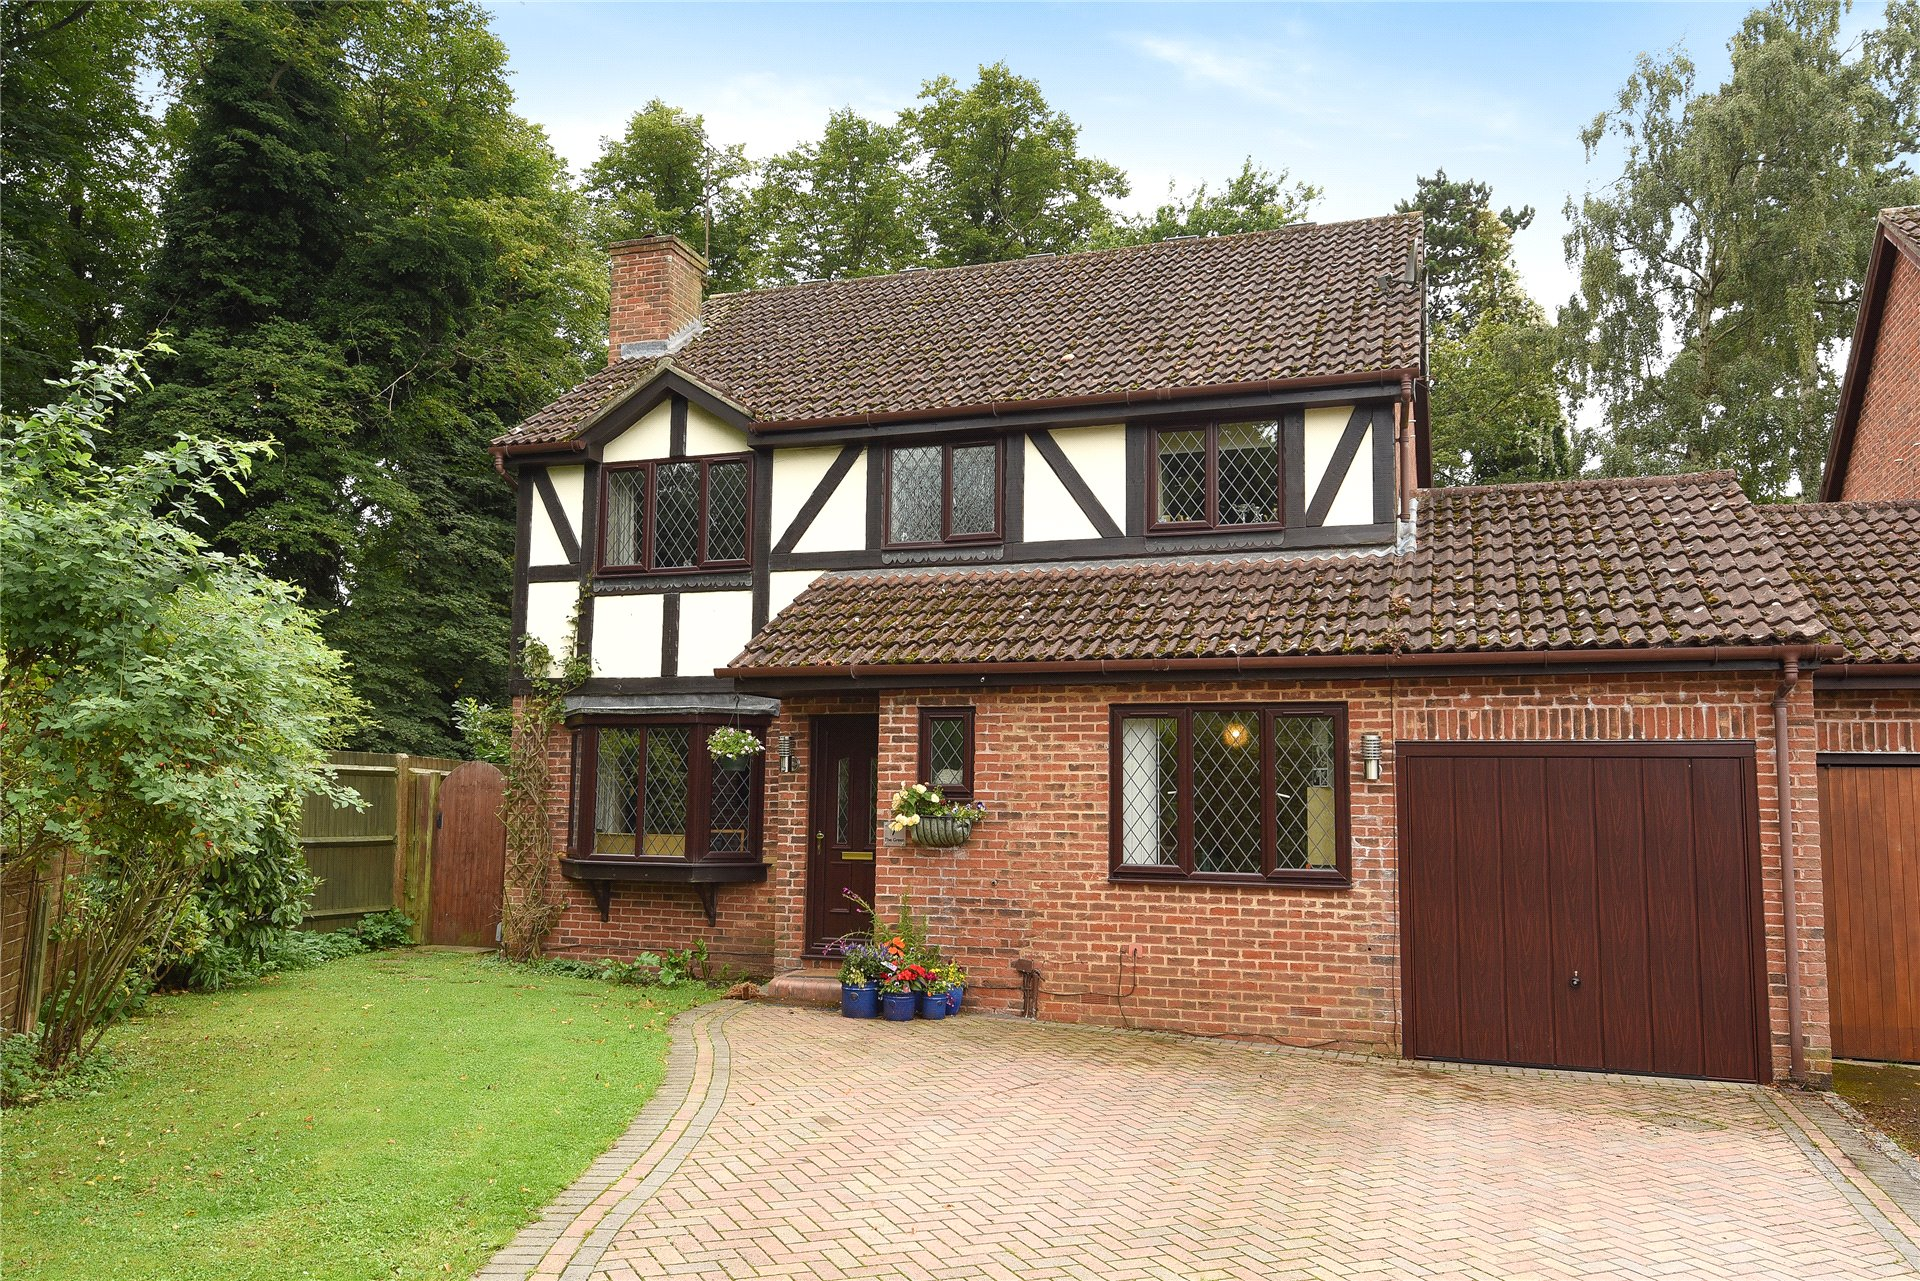 4 Bedrooms Link Detached House for sale in The Green, Woosehill, Wokingham, Berkshire, RG41